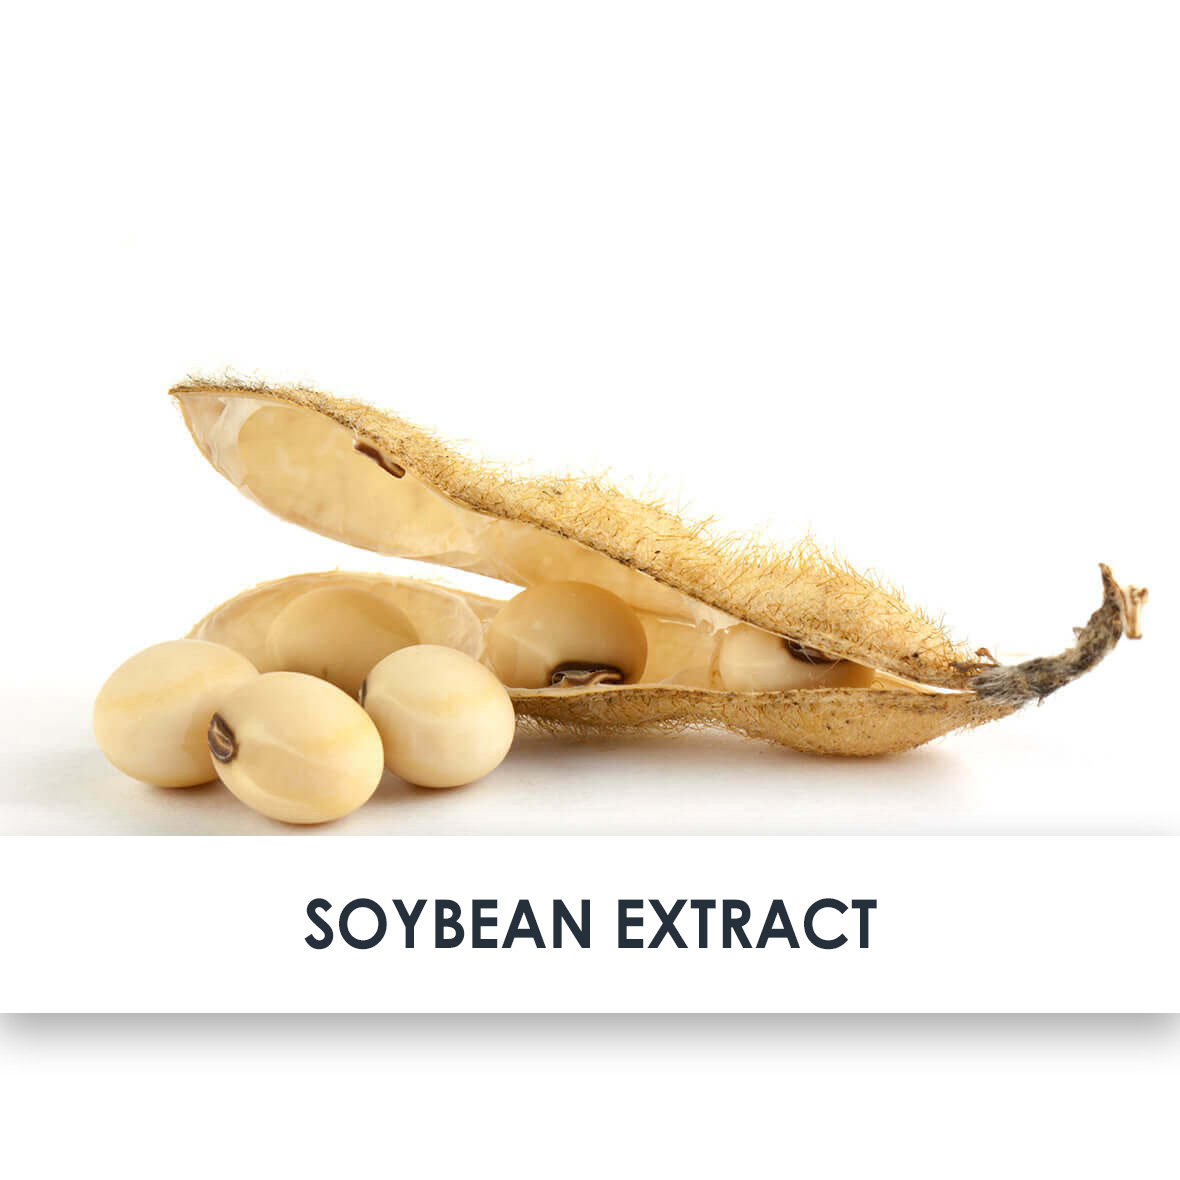 Soybean Skincare Benefits